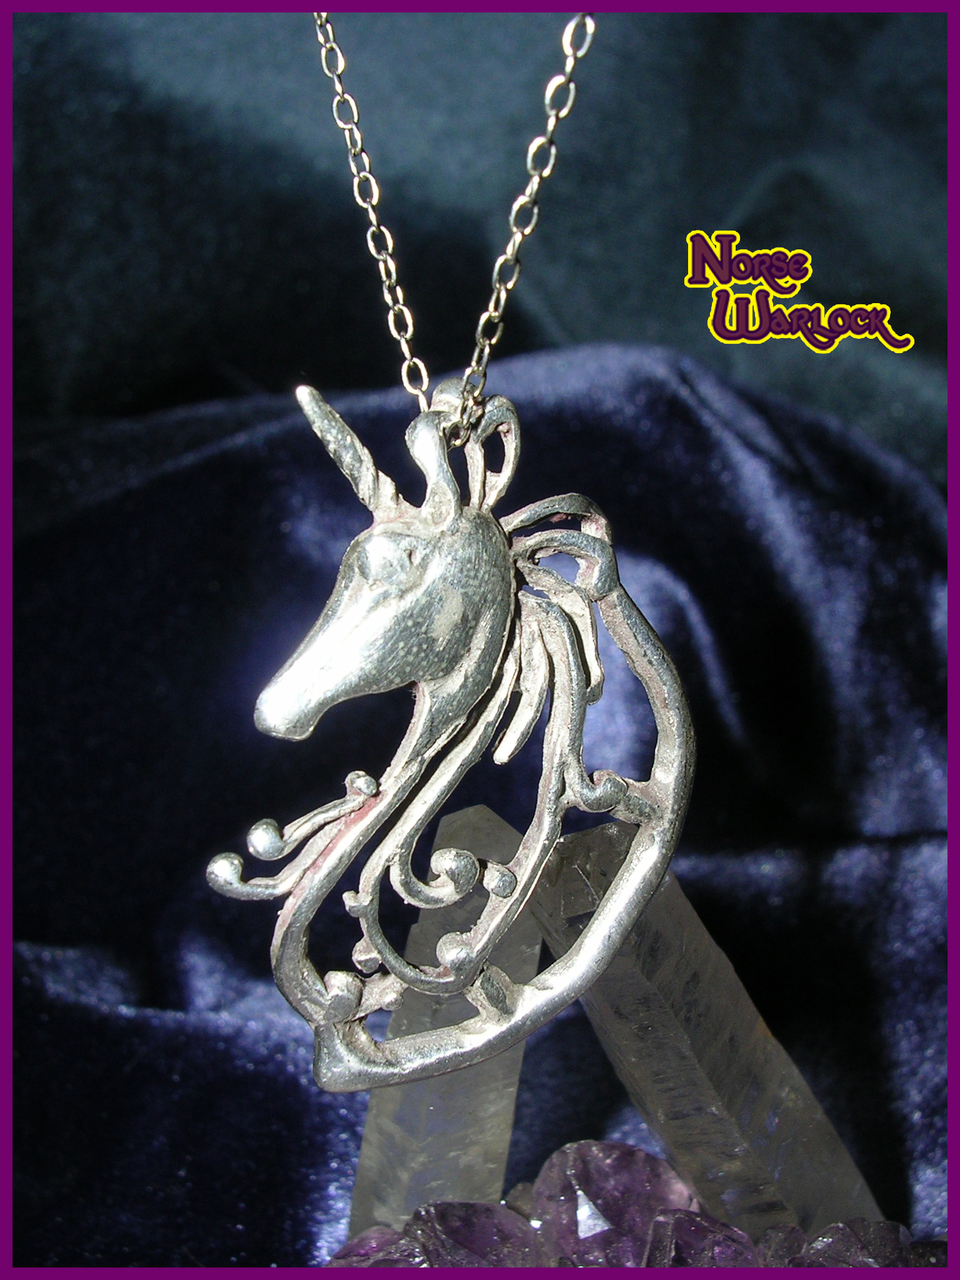 bartlett rsp buyestella unicorn online com at necklace johnlewis lewis pdp main pendant john estella gold rose